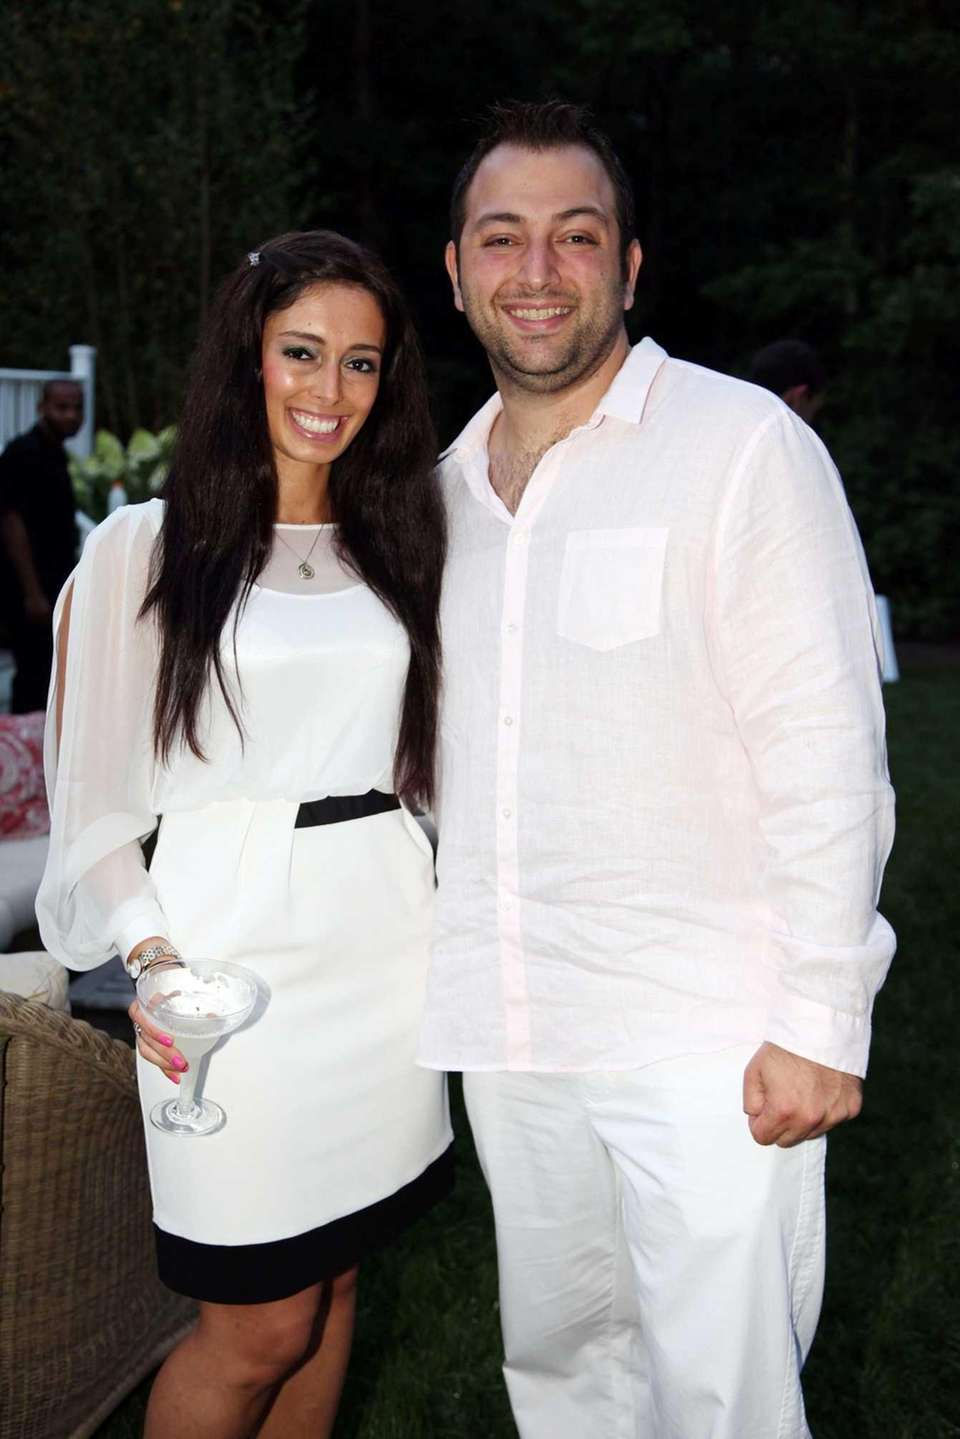 Sarah Schaefe and Justin Glazer attend the Hamptons